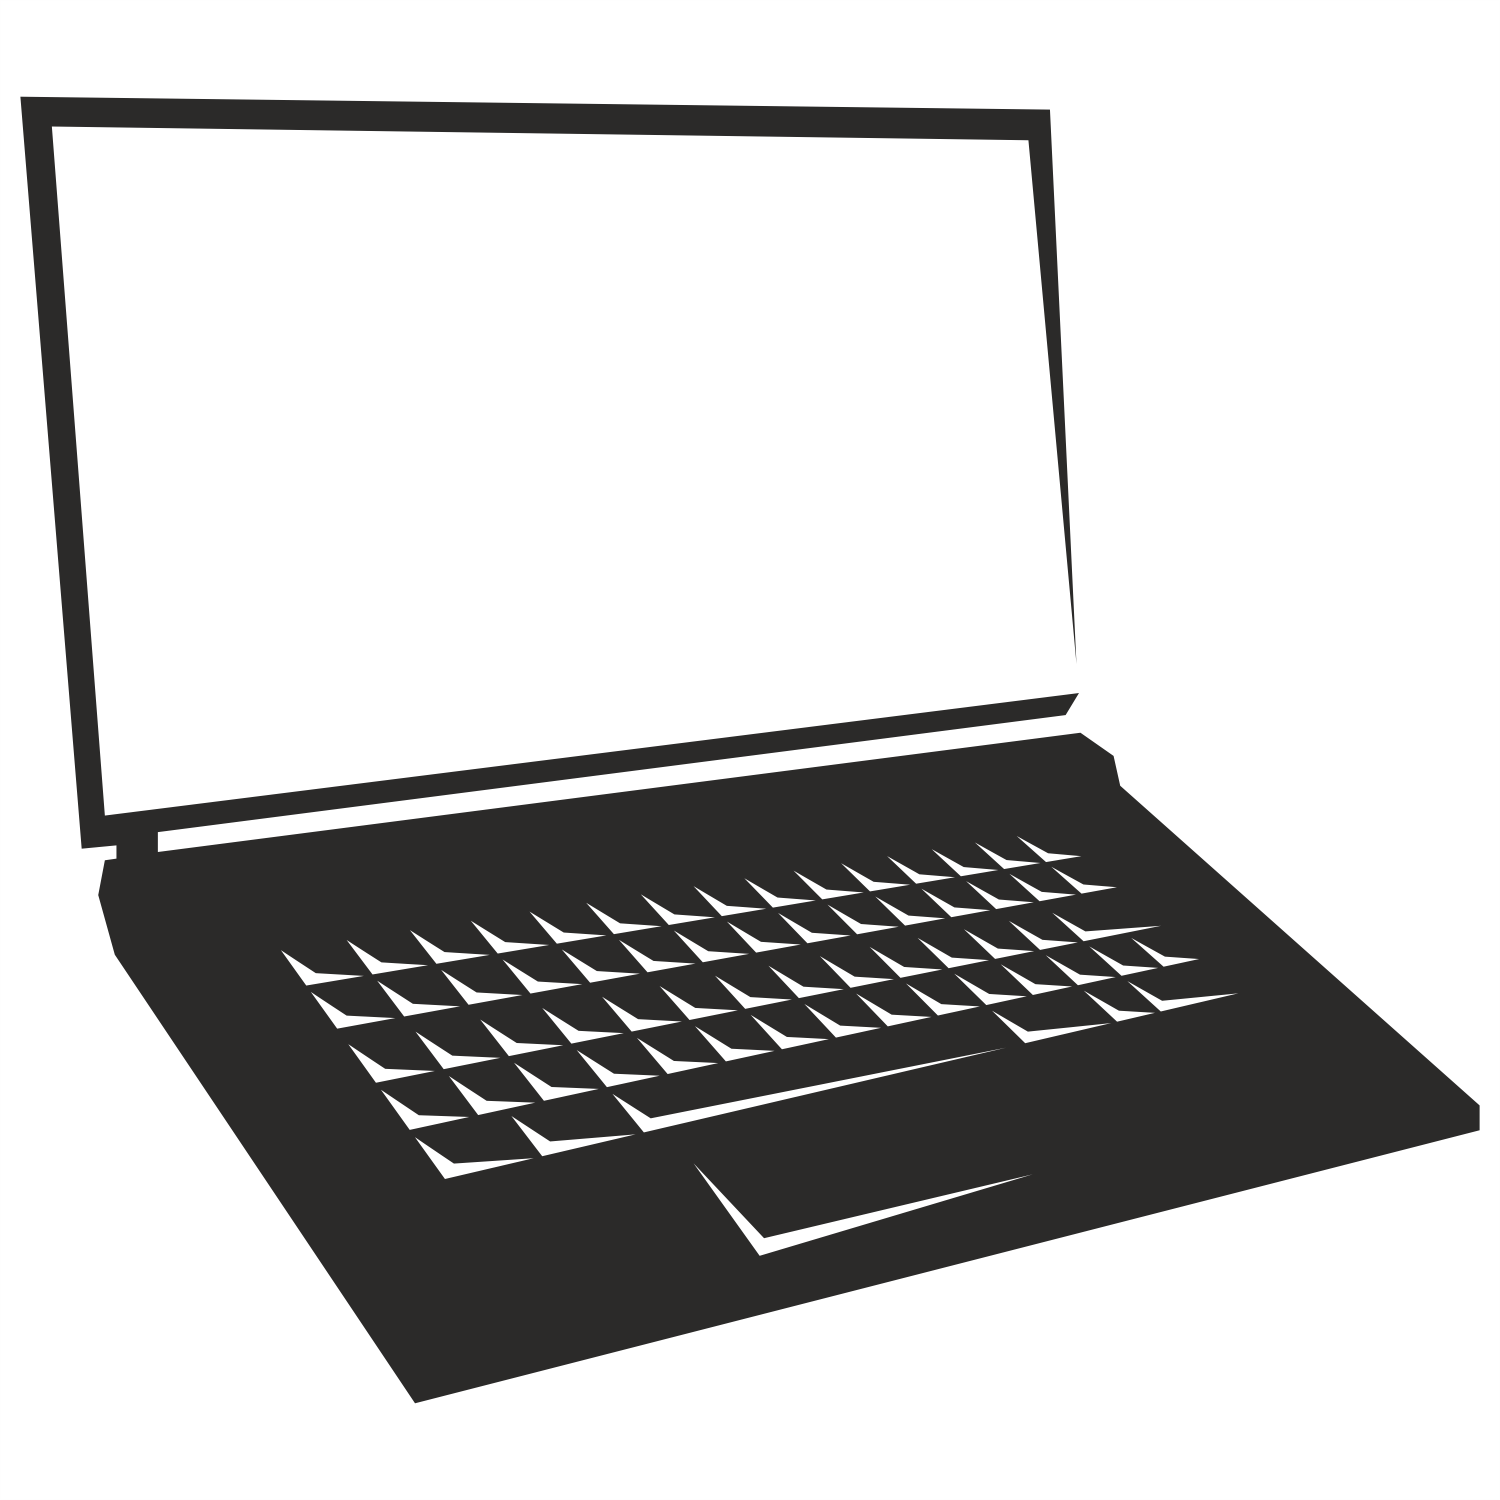 Laptop clipart clipart free download 4 - Laptop PNG Black And White